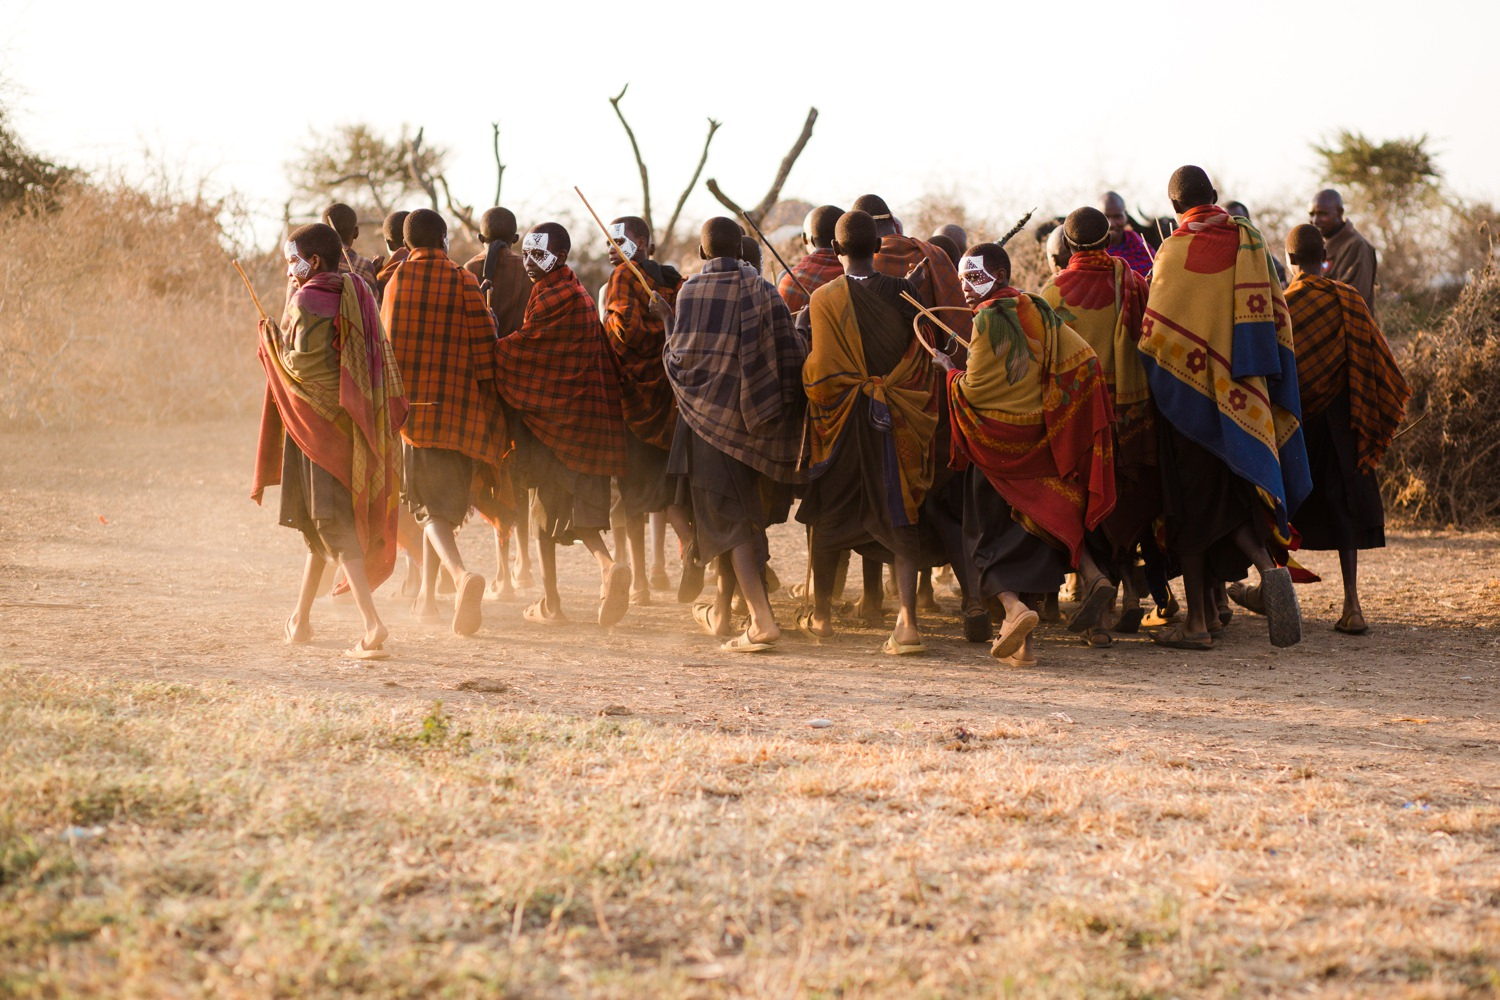 cameron-zegers-photography-tanzania-national-geographic-student-expeditions.jpg